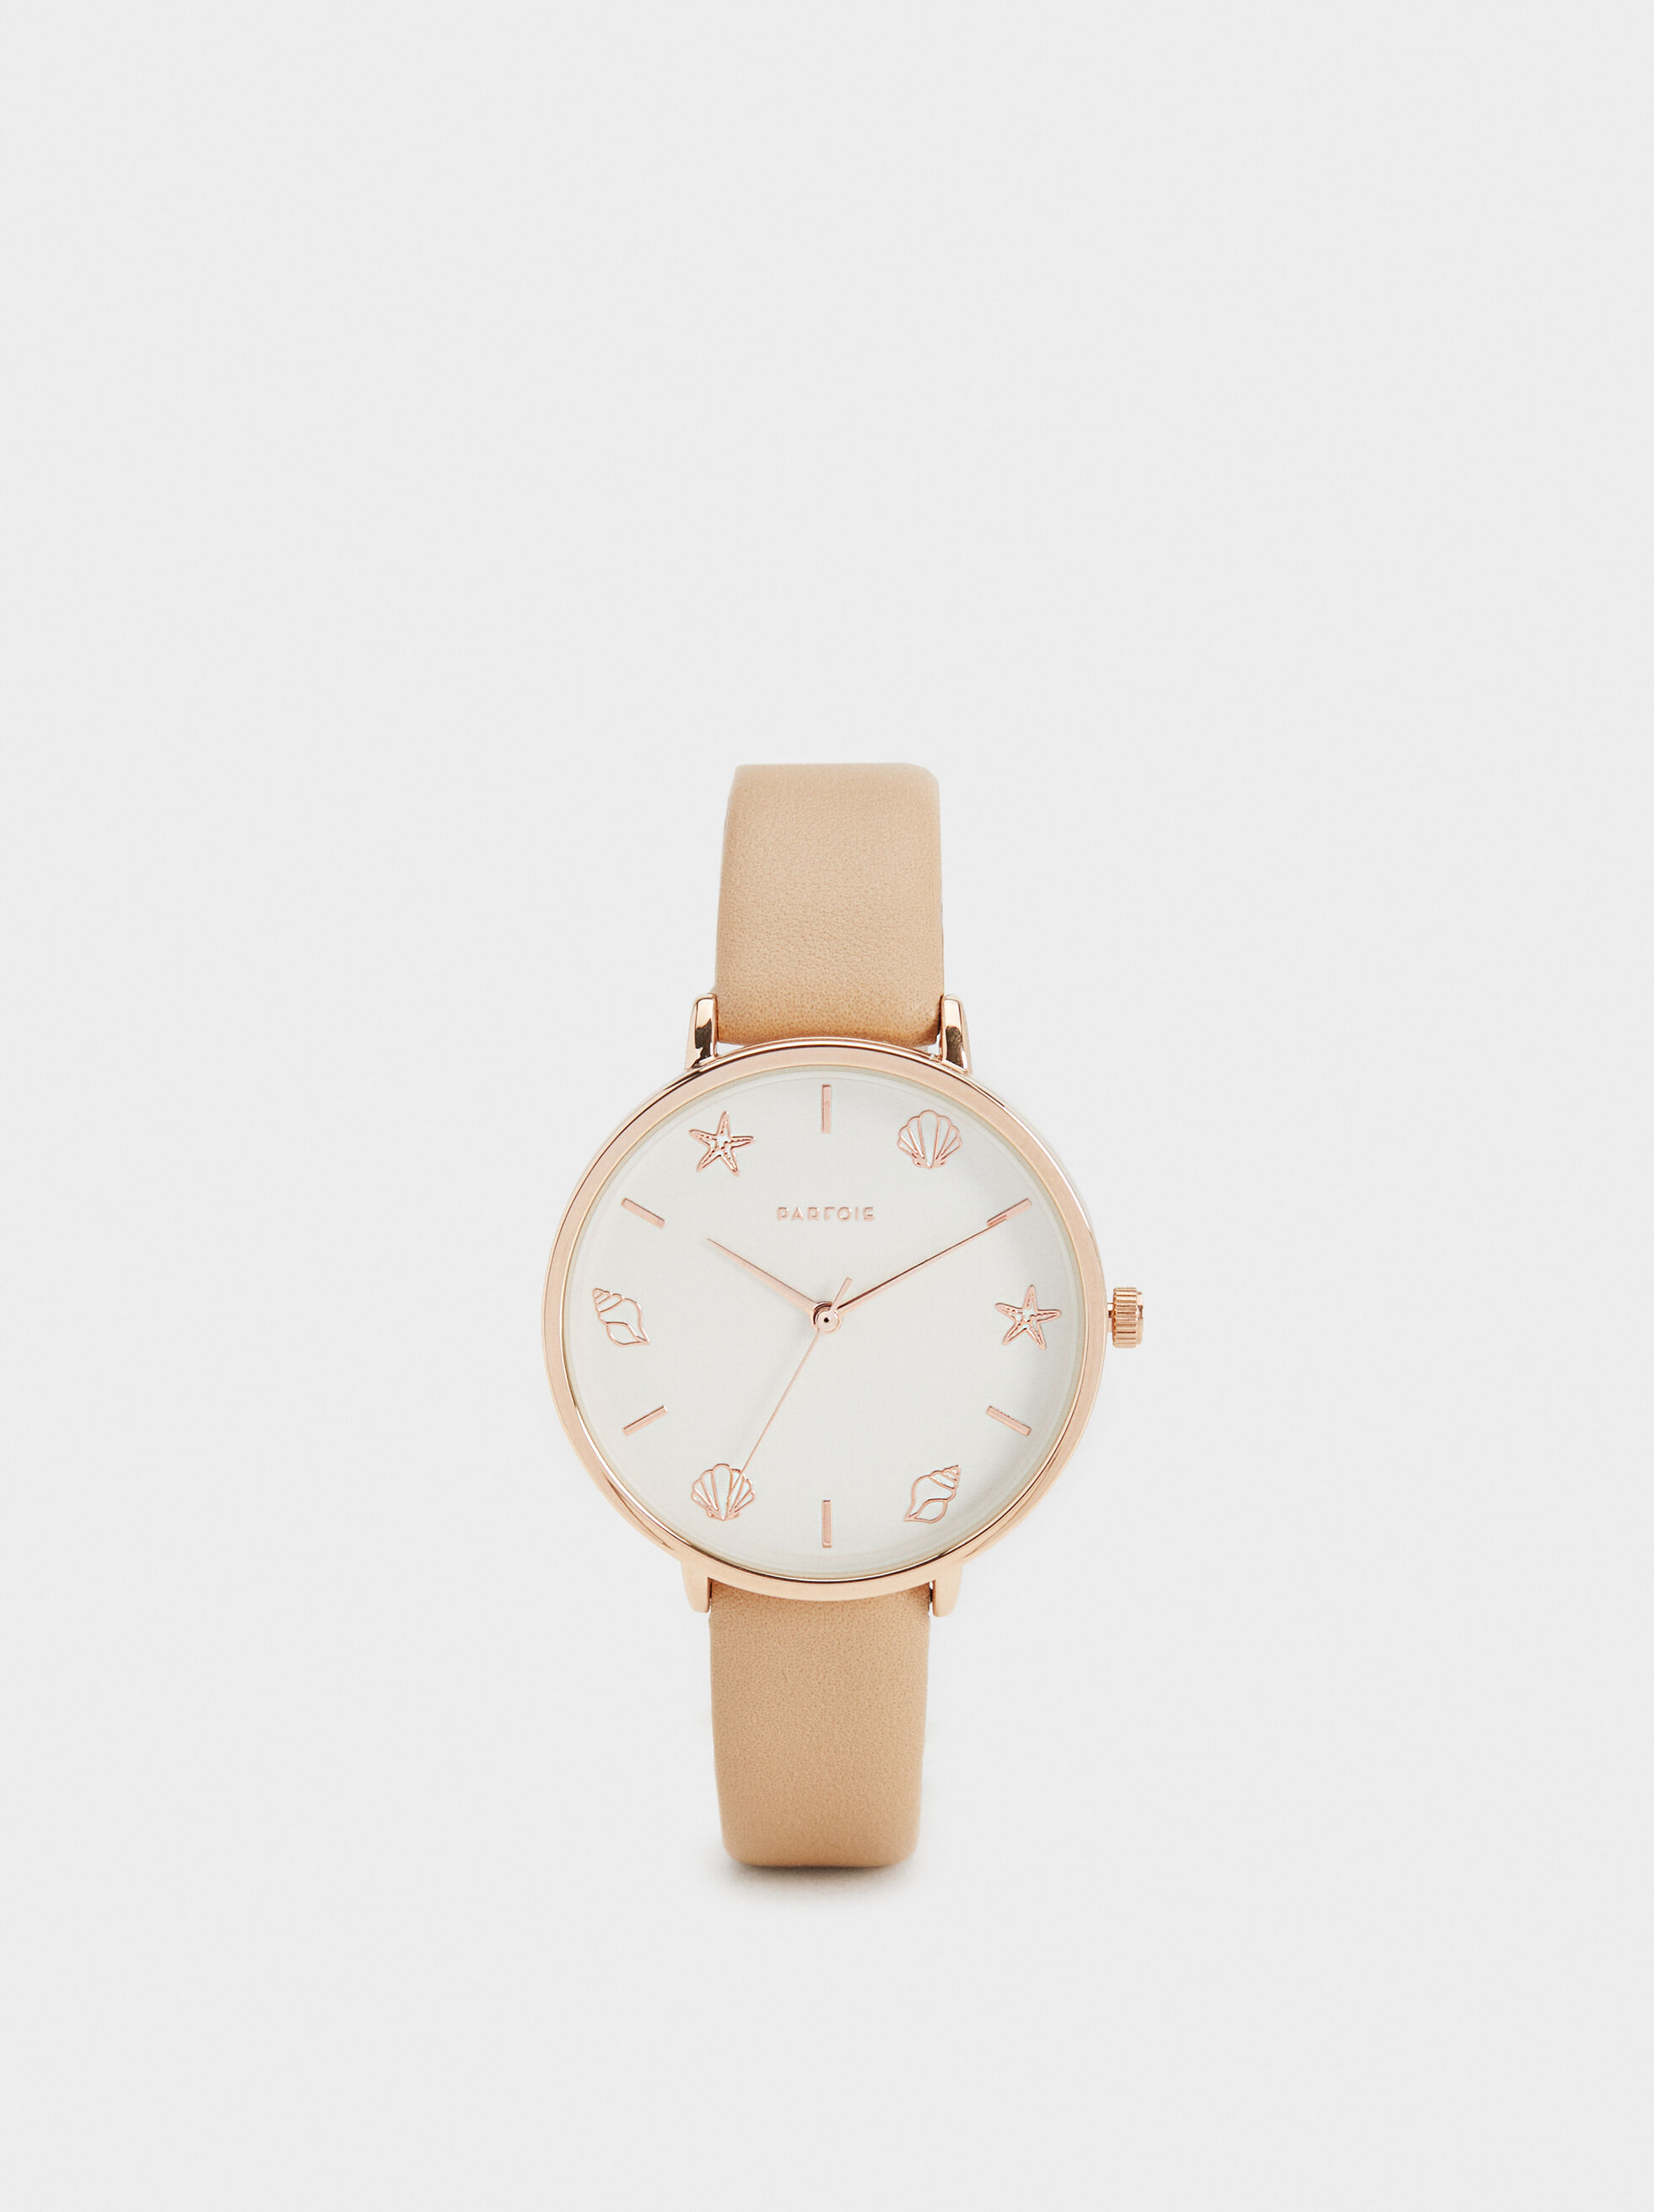 Watch With Marine Dial Details, Beige, hi-res